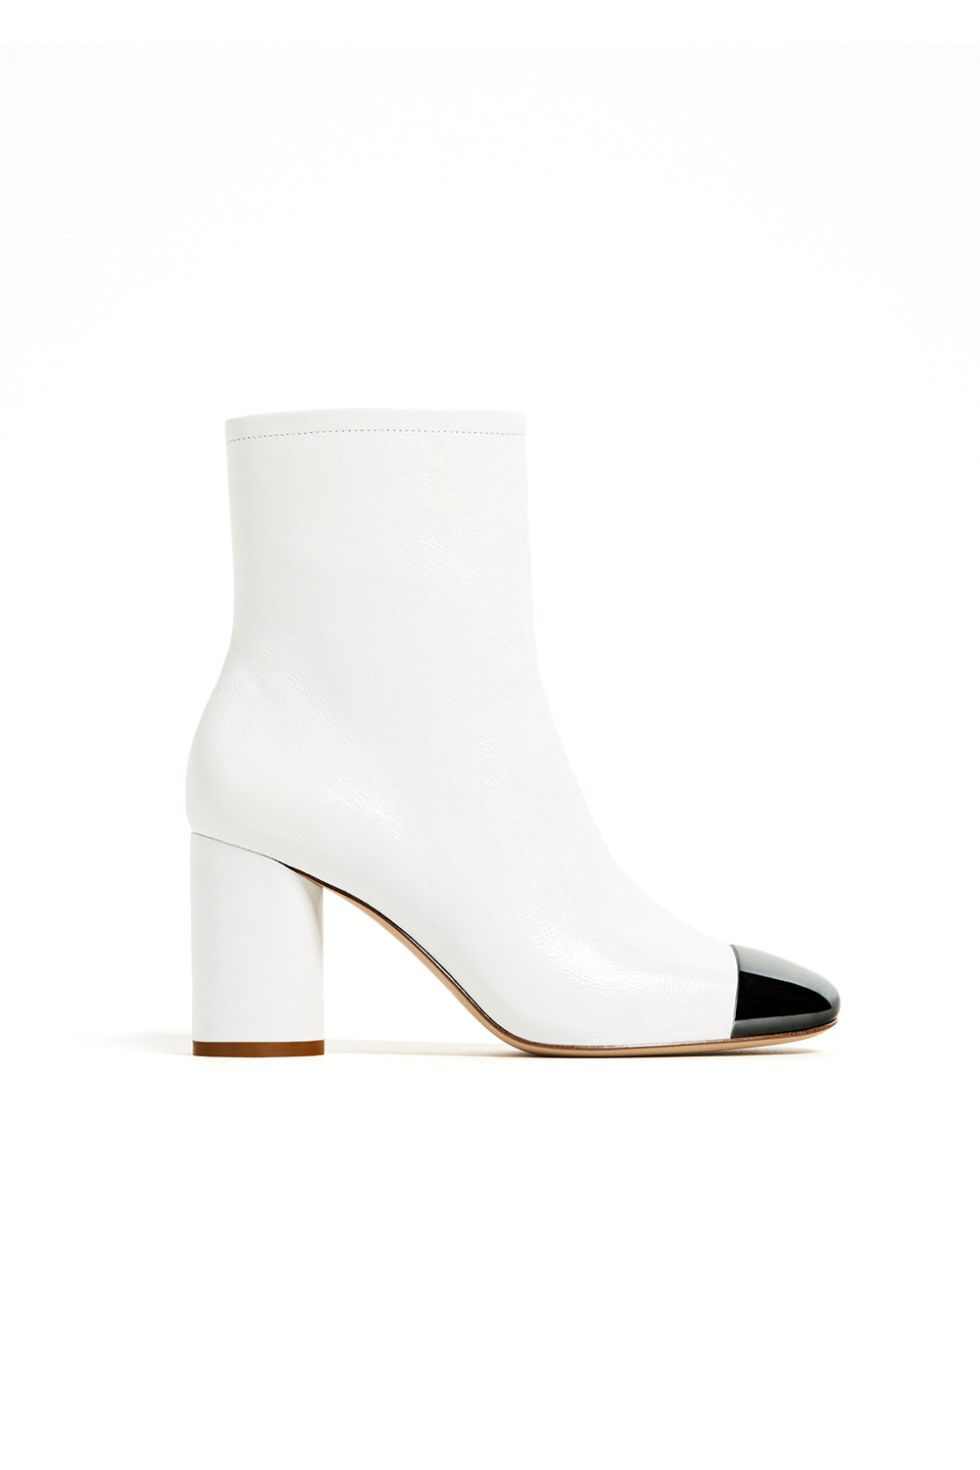 82cdf8627e7 You Need White Boots—Here Are 10 Hot Pairs